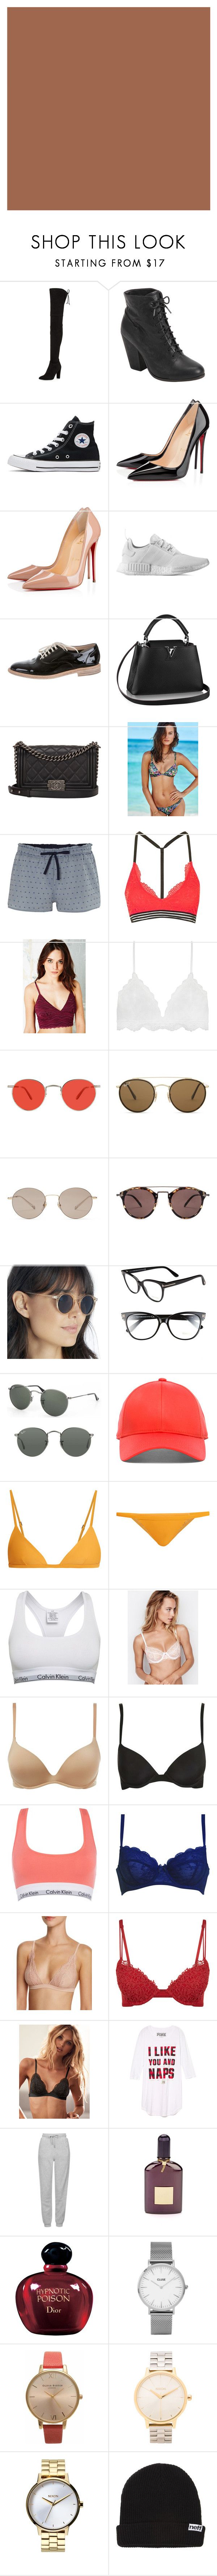 """""""Winter Mediterranean/Europe Trip"""" by katiasitems on Polyvore featuring Stuart Weitzman, rag & bone, Converse, Christian Louboutin, adidas, Chanel, Victoria's Secret, Tommy Hilfiger, Topshop and Pins & Needles"""